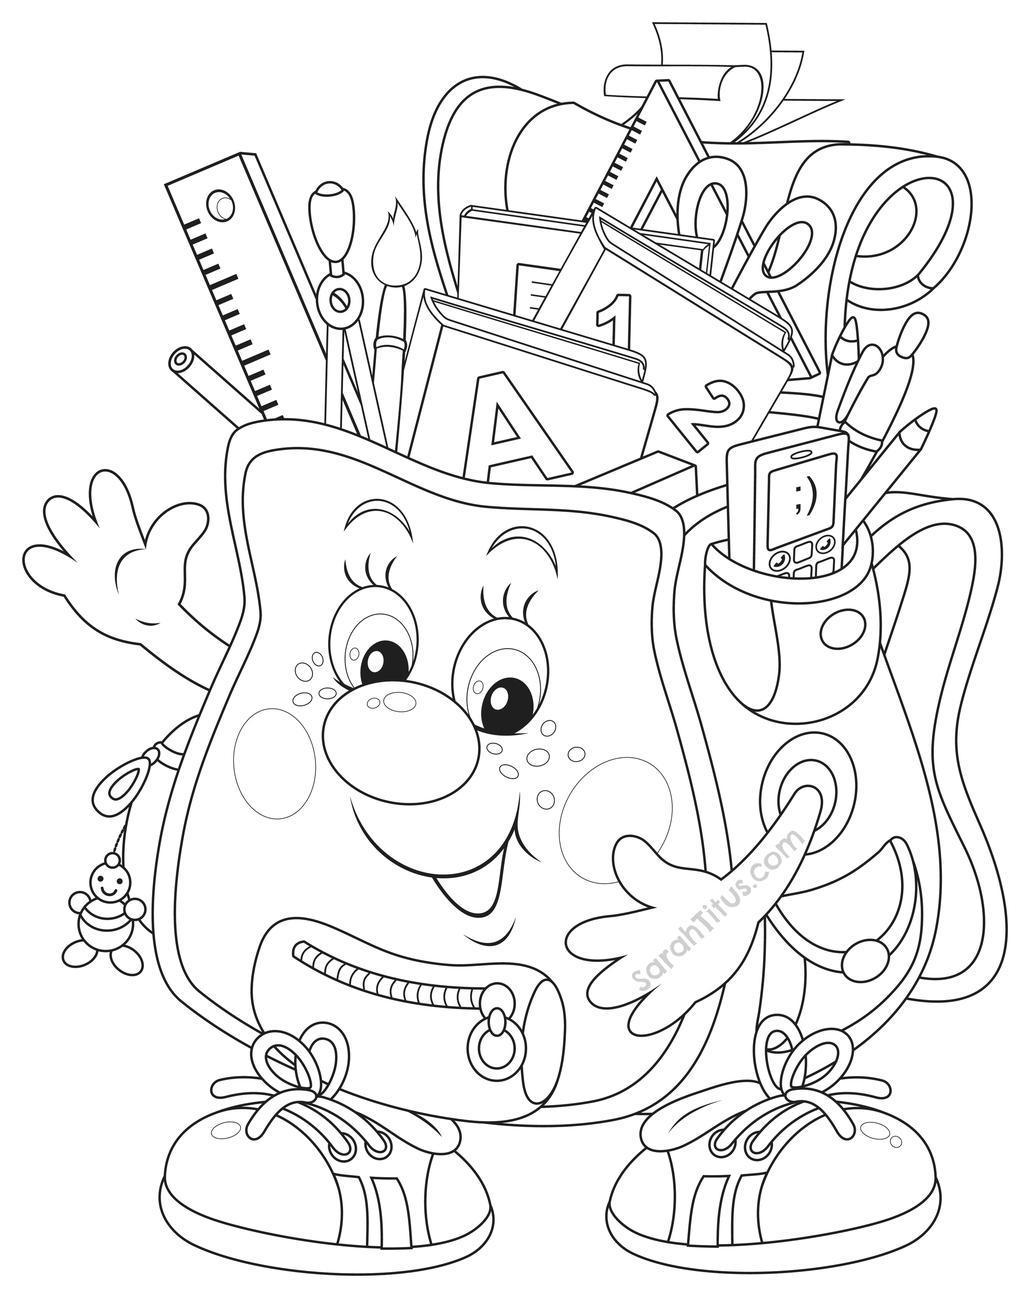 Free First Grade Back To School Coloring Pages Ethicstech Org printable